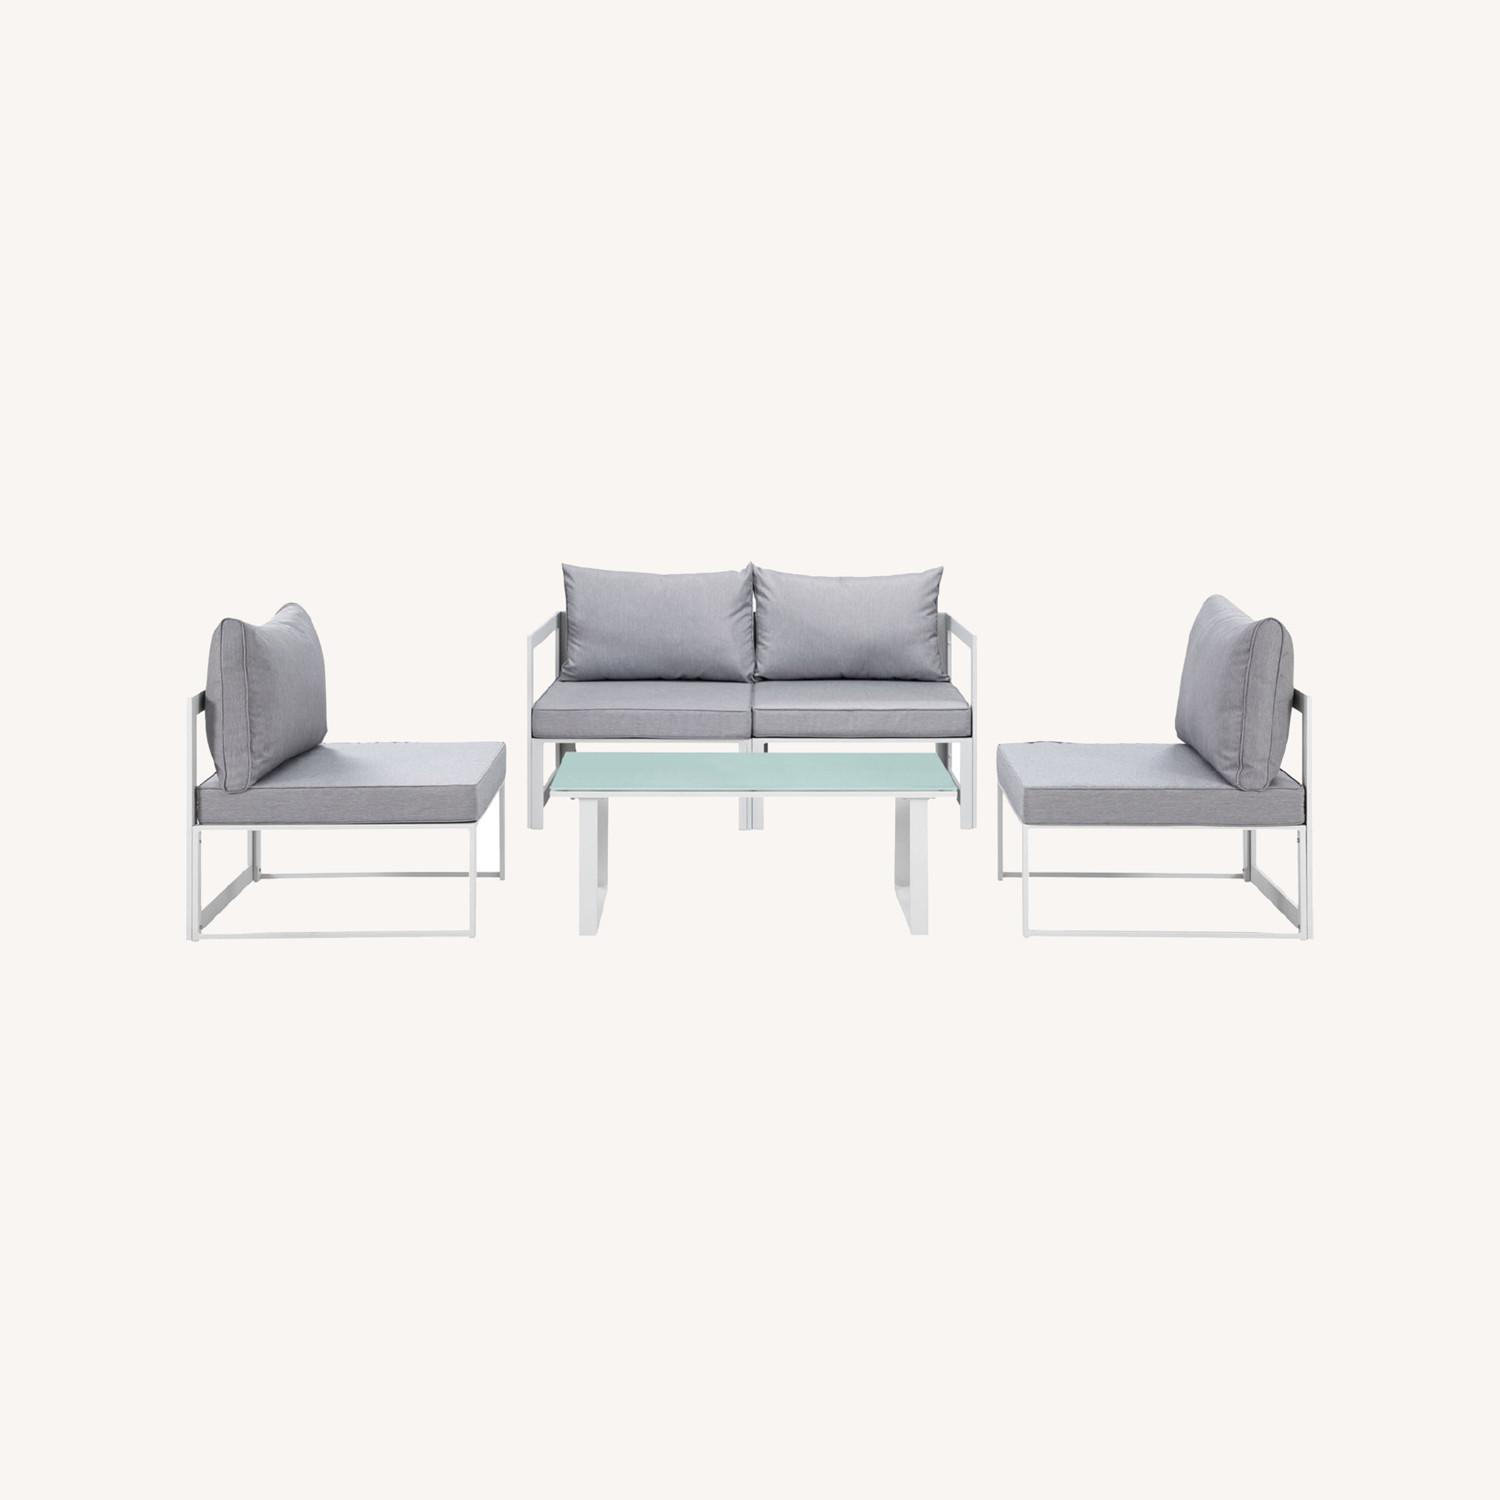 5-Piece Outdoor Sectional In Gray & White Finish - image-6